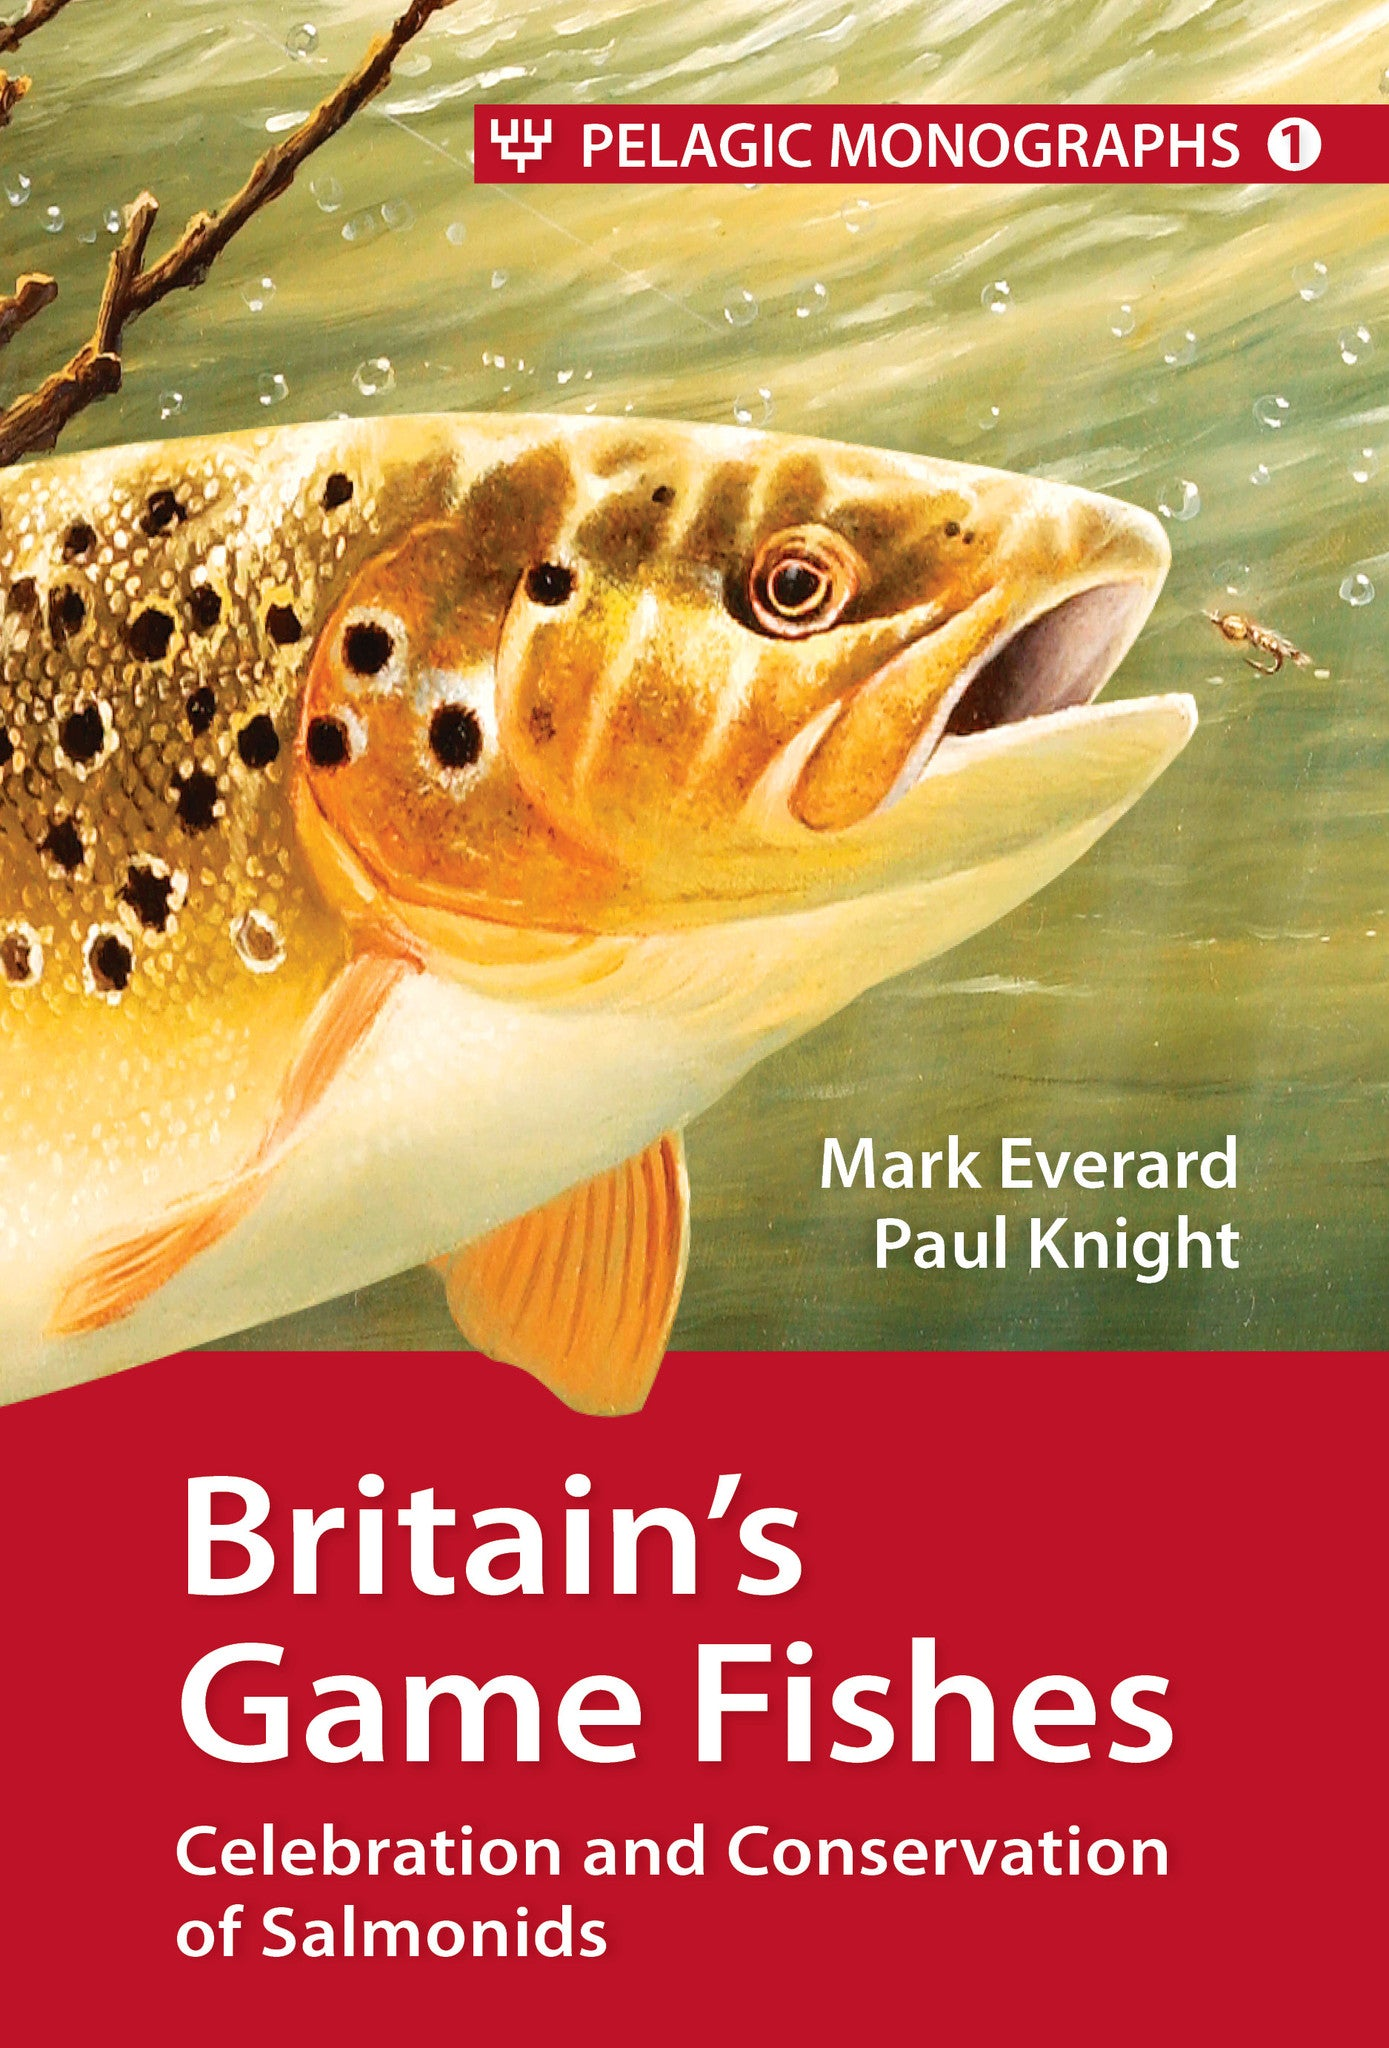 Britain's Game Fishes - Pelagic Publishing